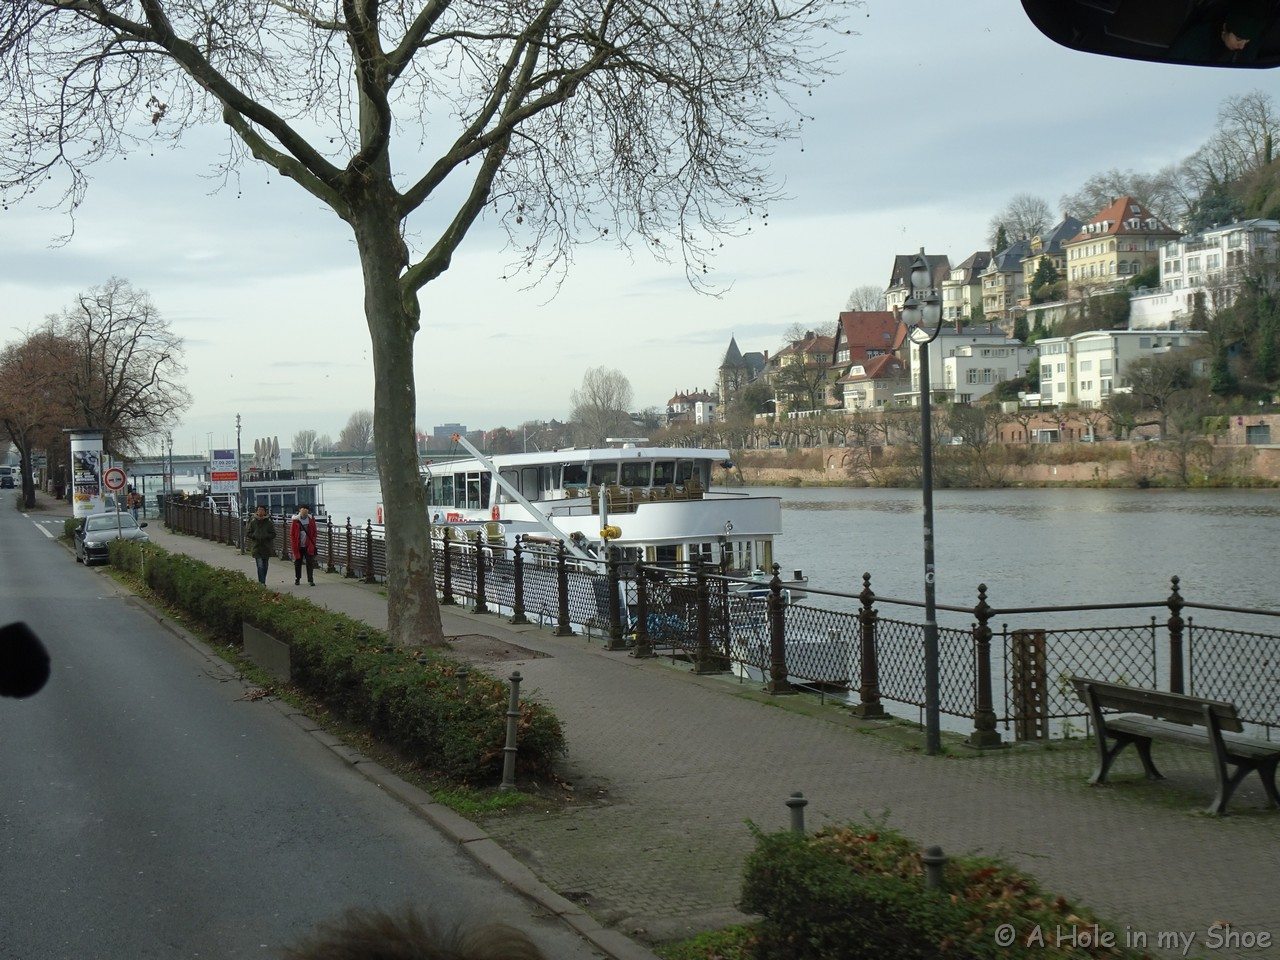 River cruising, what's it all about? - aholeinmyshoe